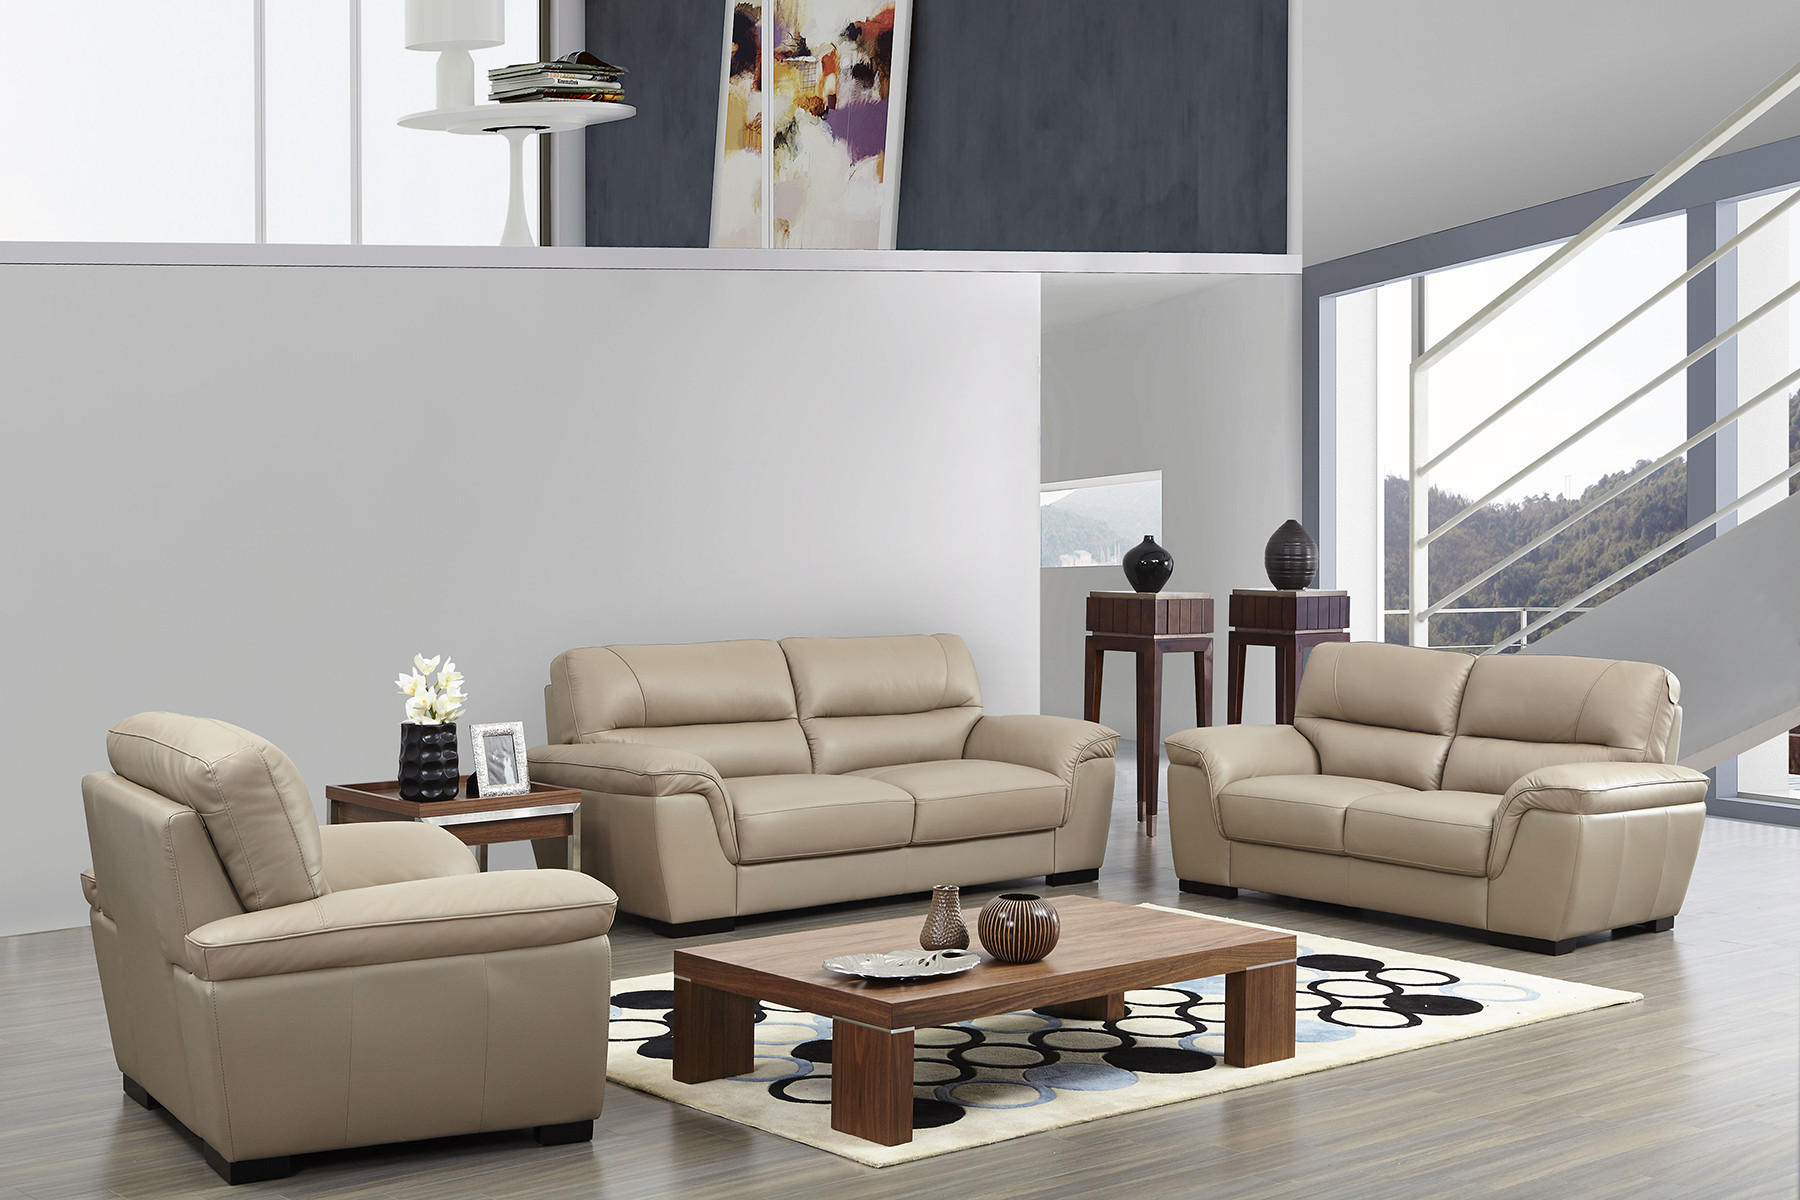 Best ideas about Italian Sofa Set . Save or Pin Contemporary Beige Leather Stylish Sofa Set with Wooden Now.